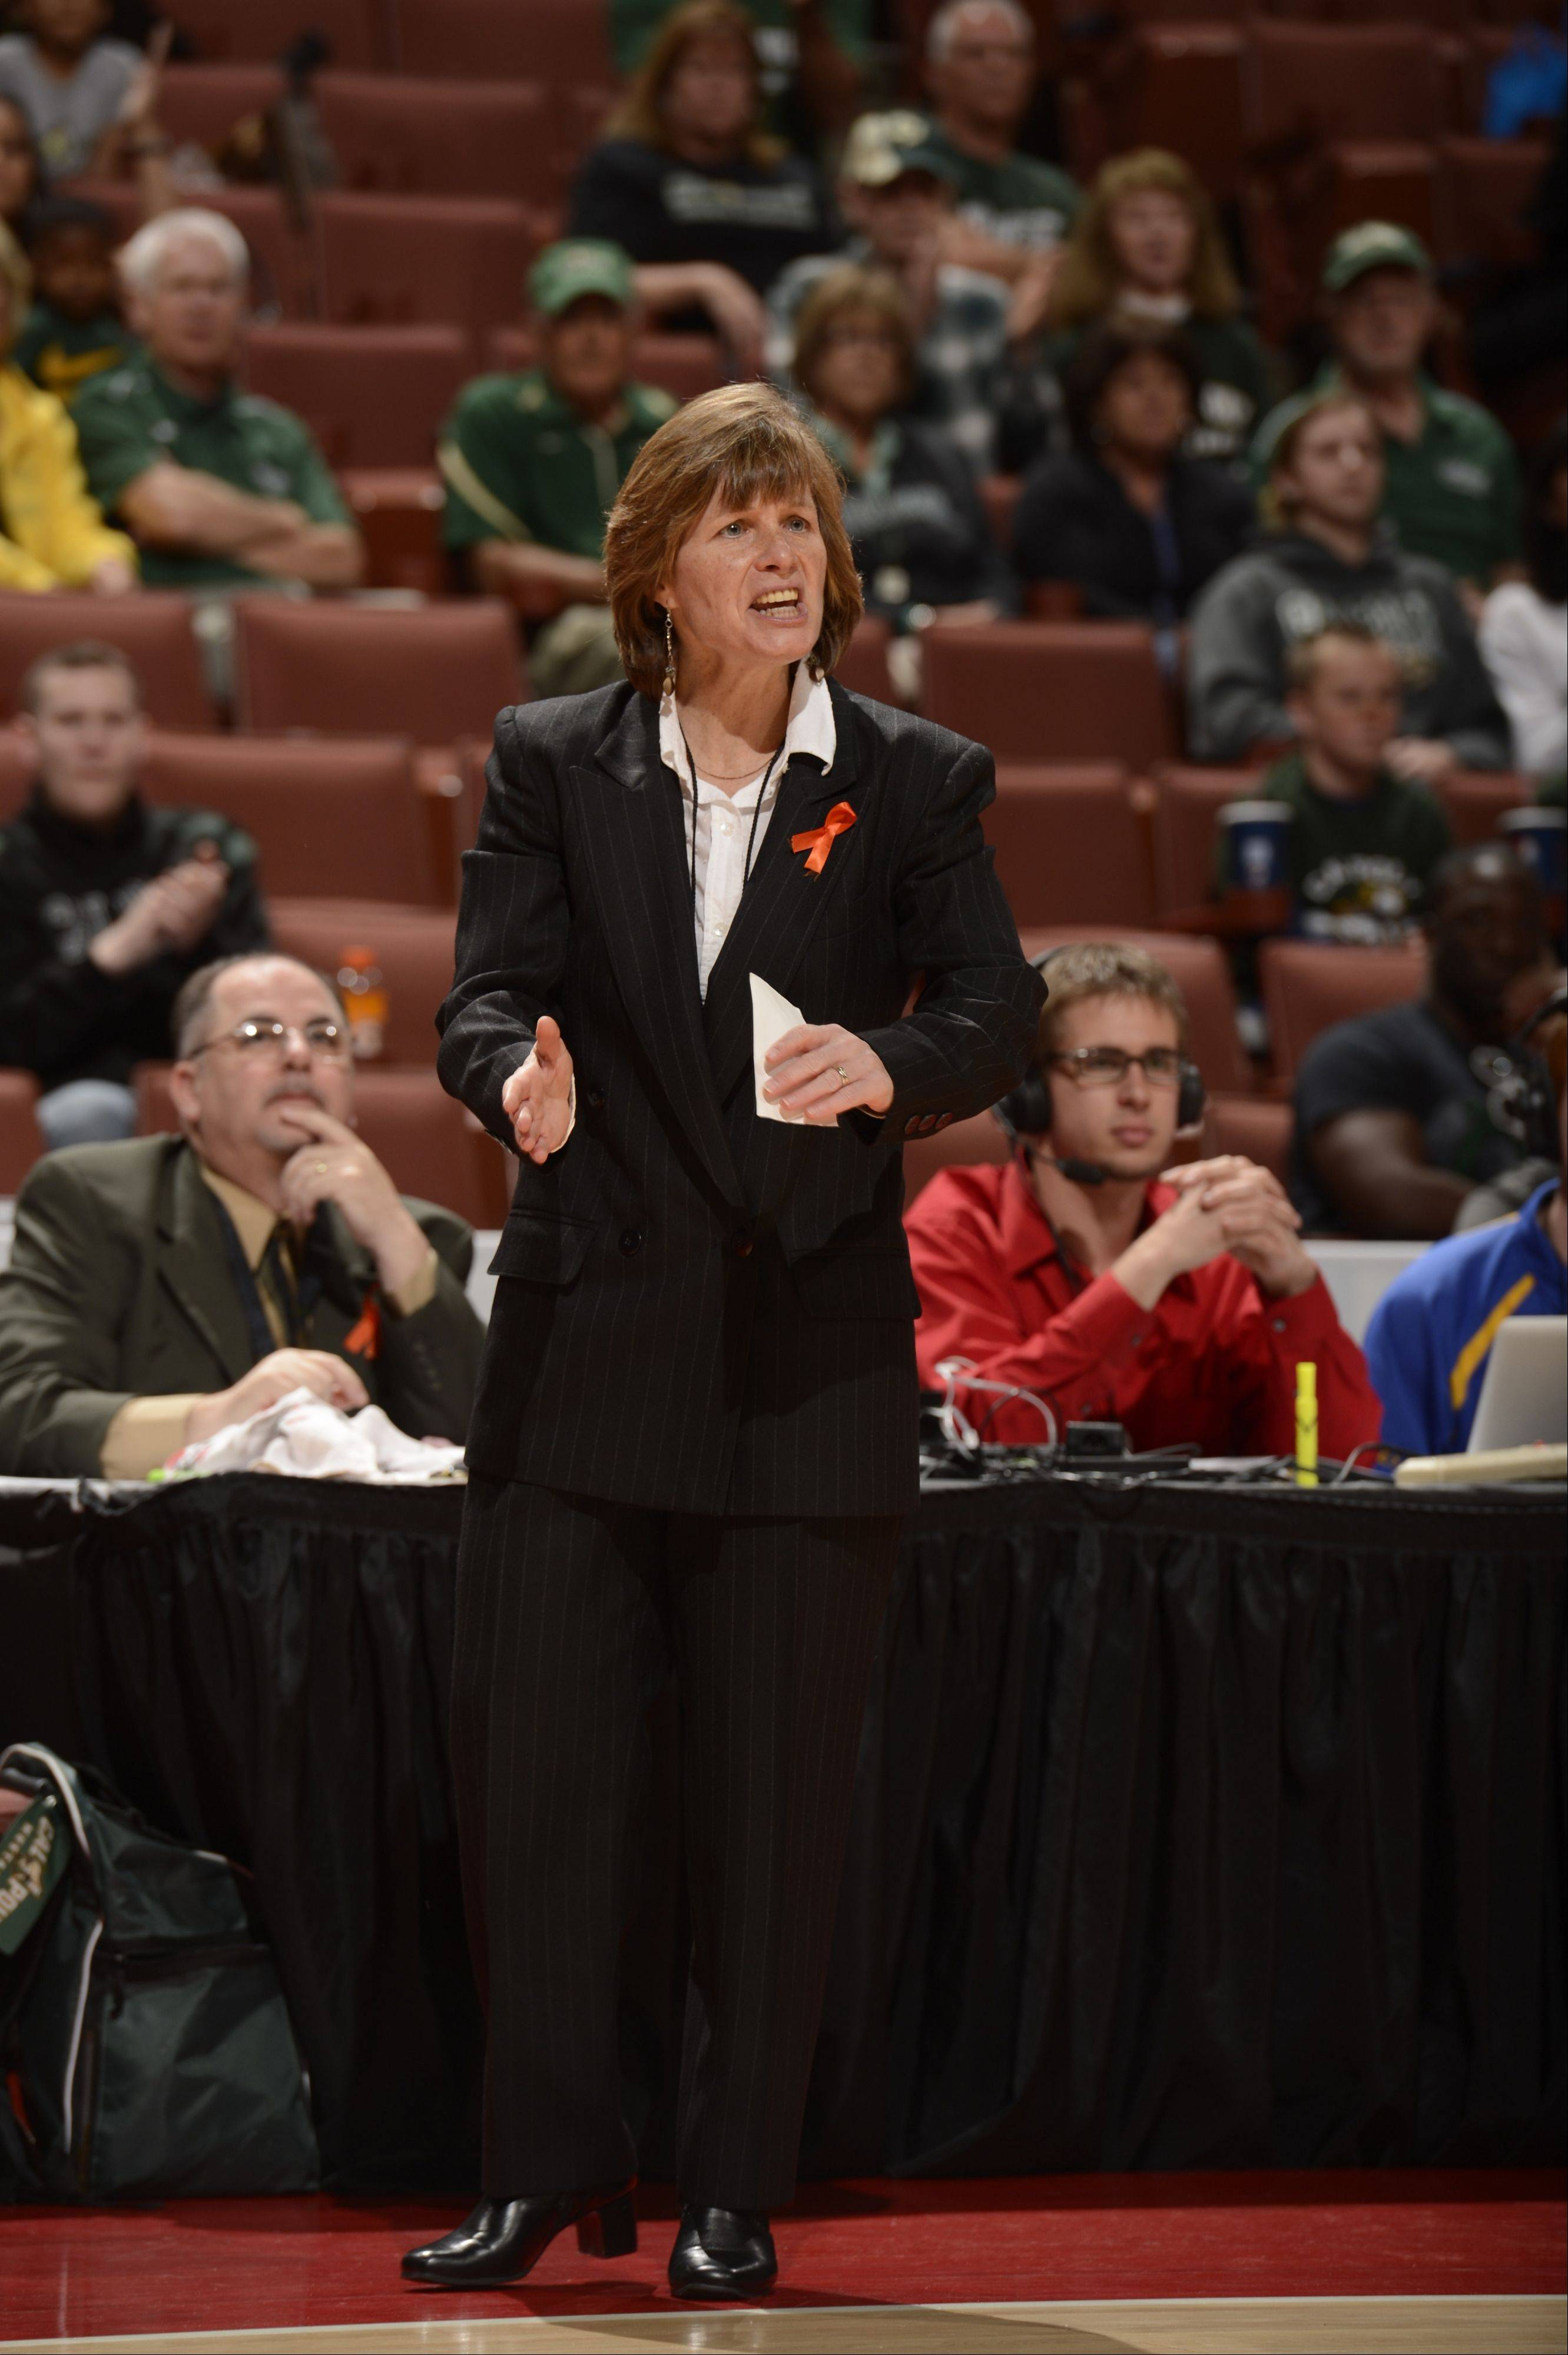 Faith Mimnaugh, who won a state basketball title as a player at Elk Grove High School in 1981, is now in her 17th season as the head coach of women's basketball at Cal Poly. The Mustangs are playing this weekend at DePaul.